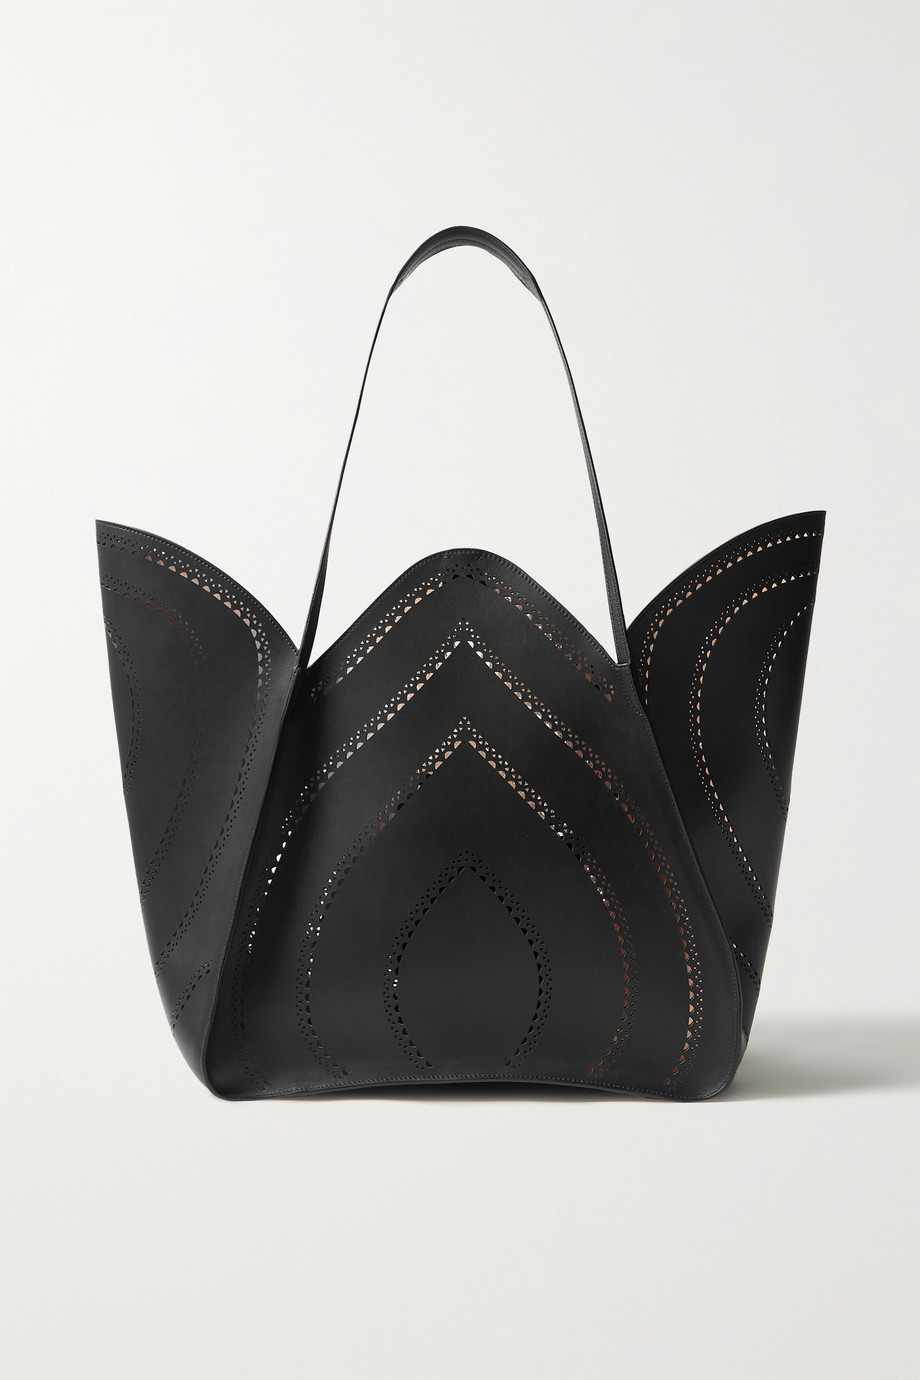 Alaïa Lili laser-cut leather tote